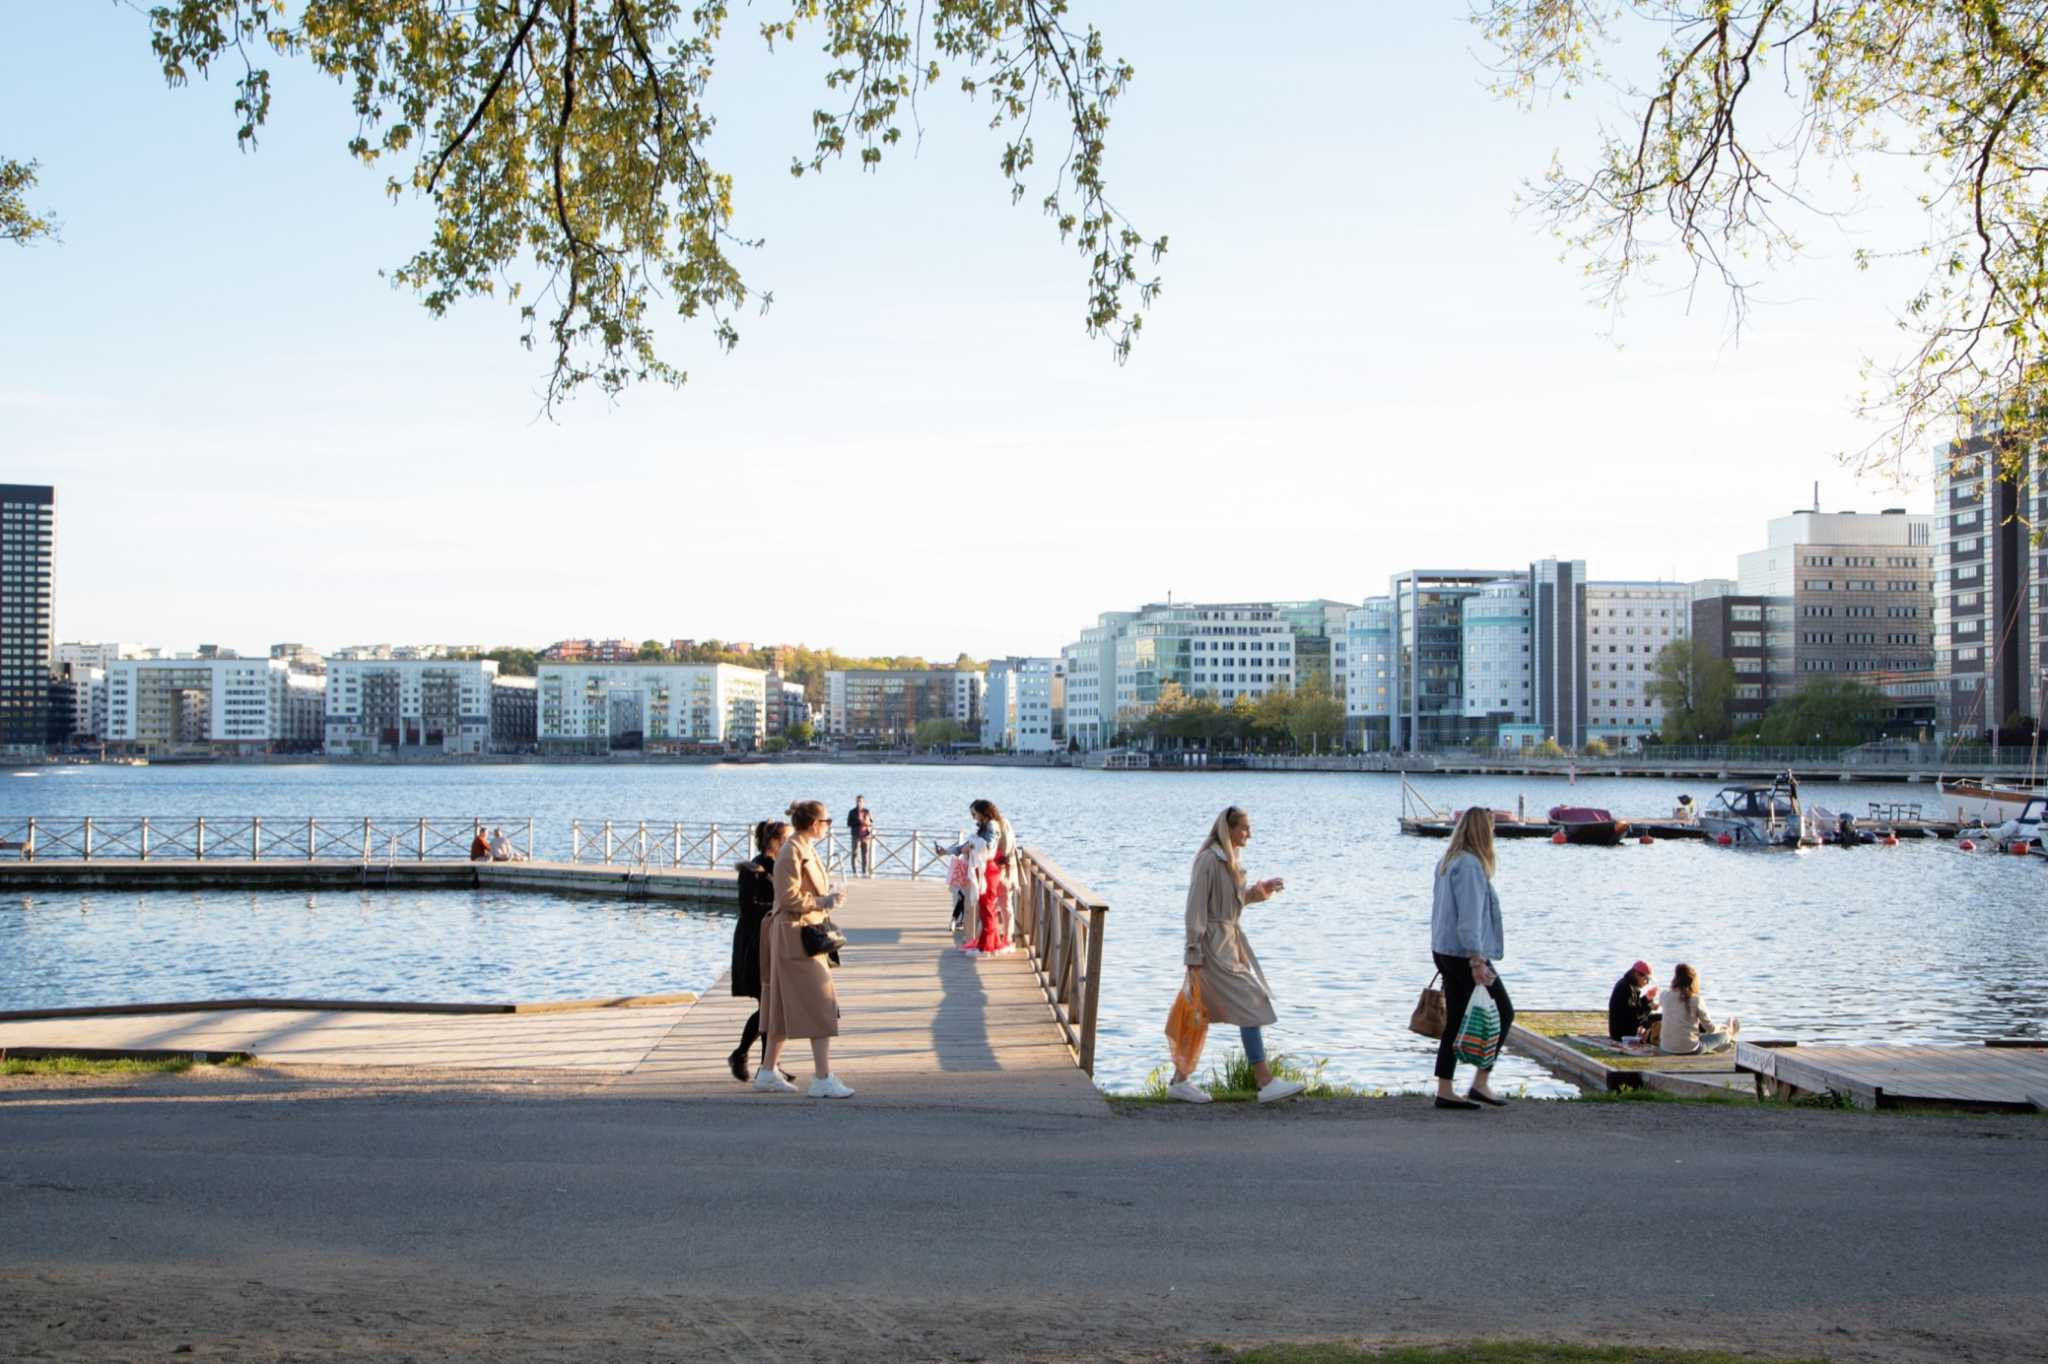 Sweden has become the world's cautionary tale